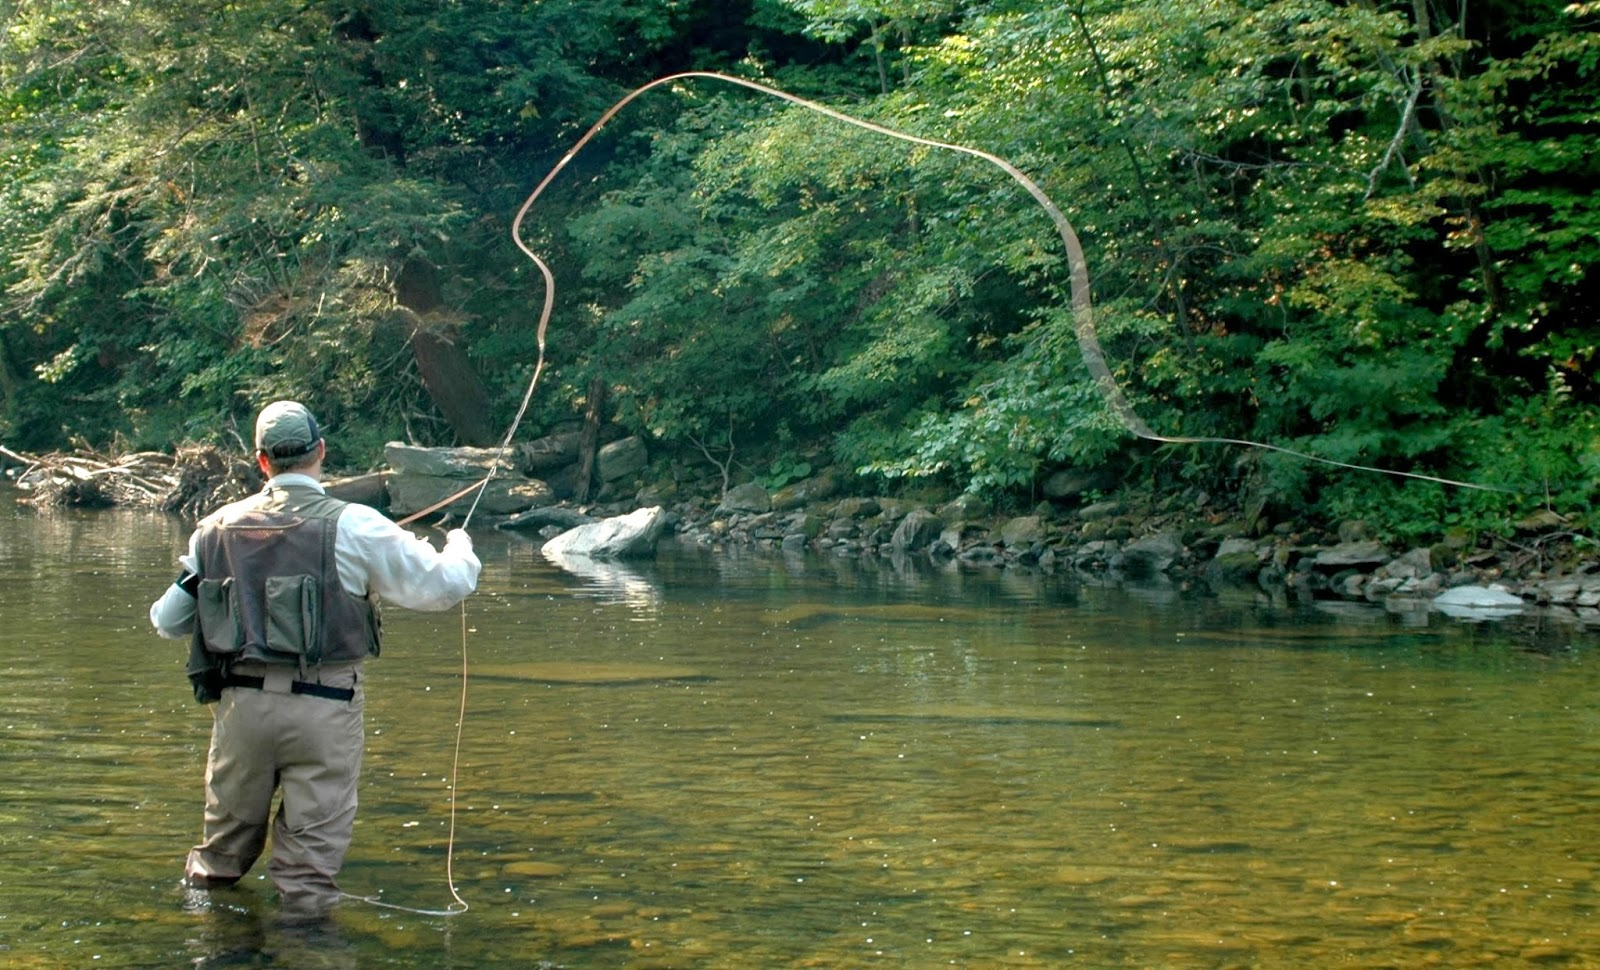 Download image Fly Fishing Fish PC, Android, iPhone and iPad ...